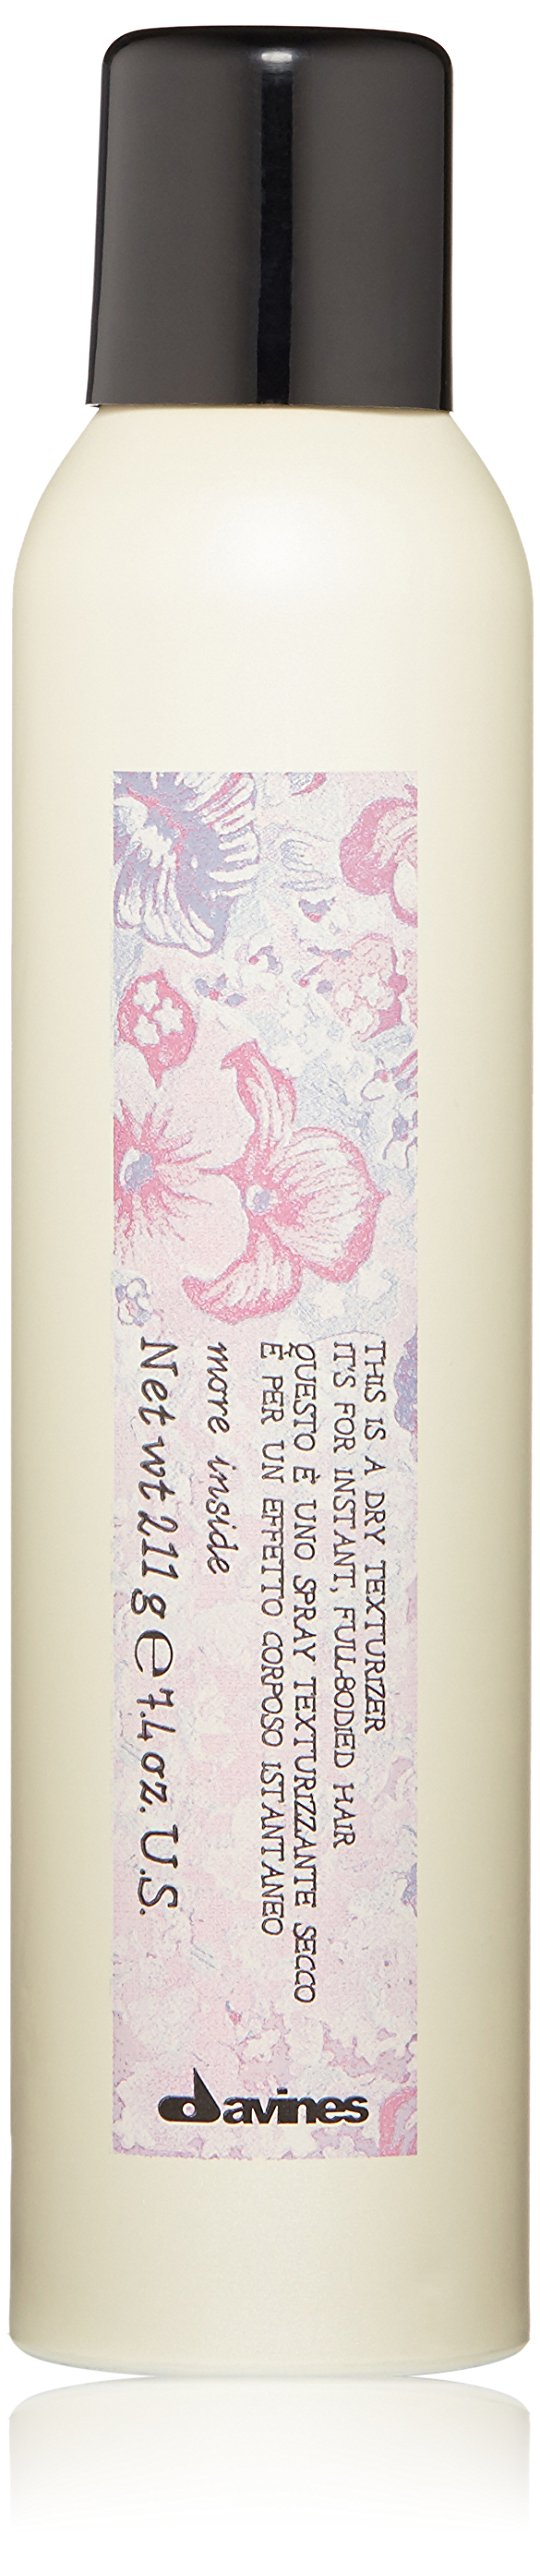 Davines This is a Dry Texturizer, 7.45 fl. oz.